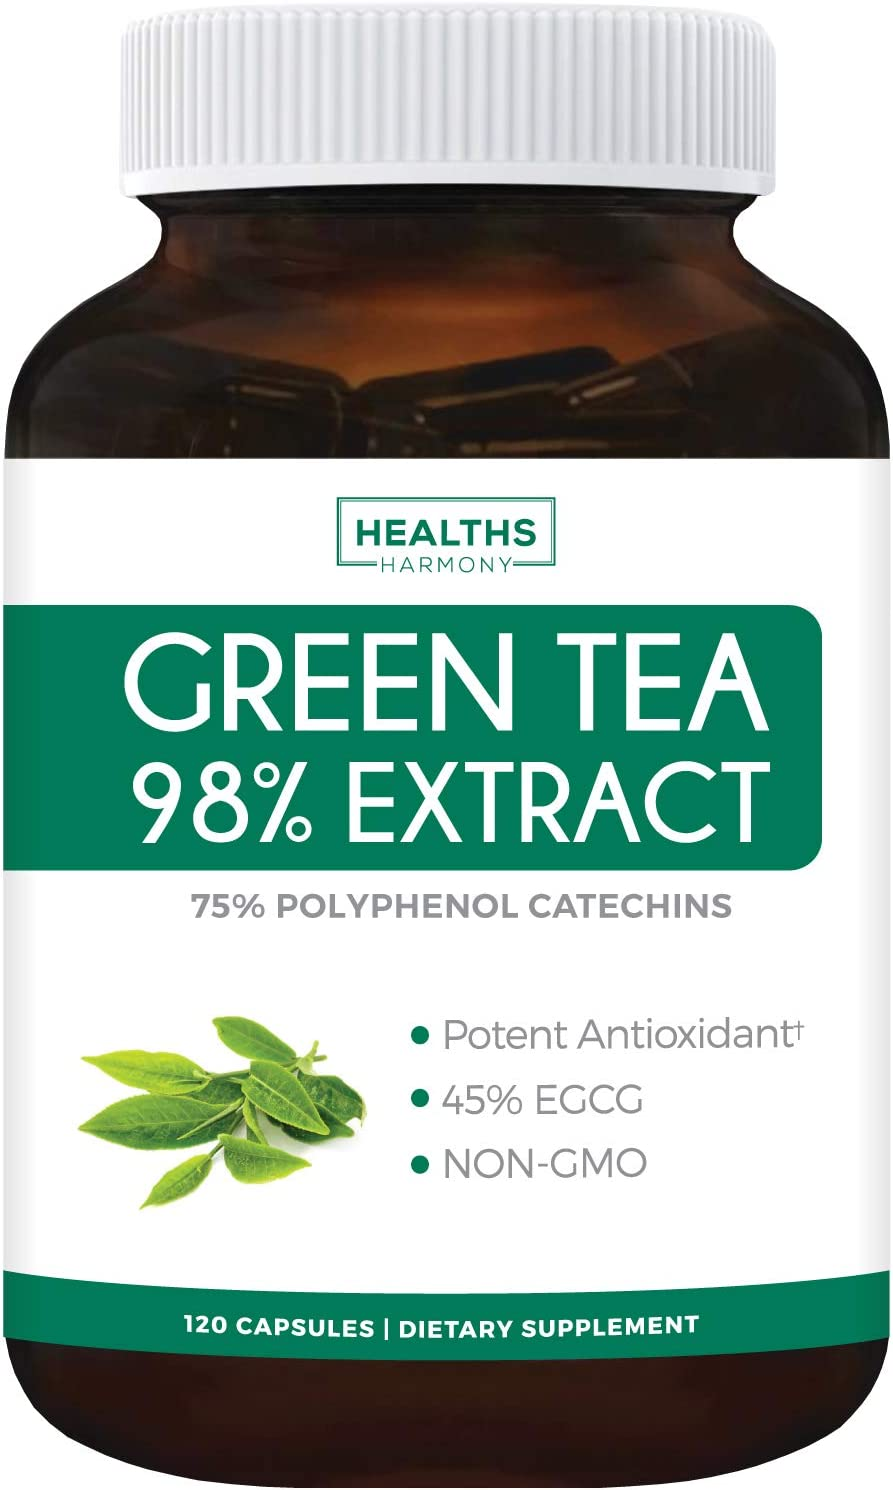 Green Tea 98% Extract with EGCG - 120 Capsules (Non-GMO) for Weight Loss & Metabolism Boost - Natural Diet Pills - Leaf Polyphenol Catechins - Antioxidant Supplement - 1000mg (500mg per Capsule): Health & Personal Care